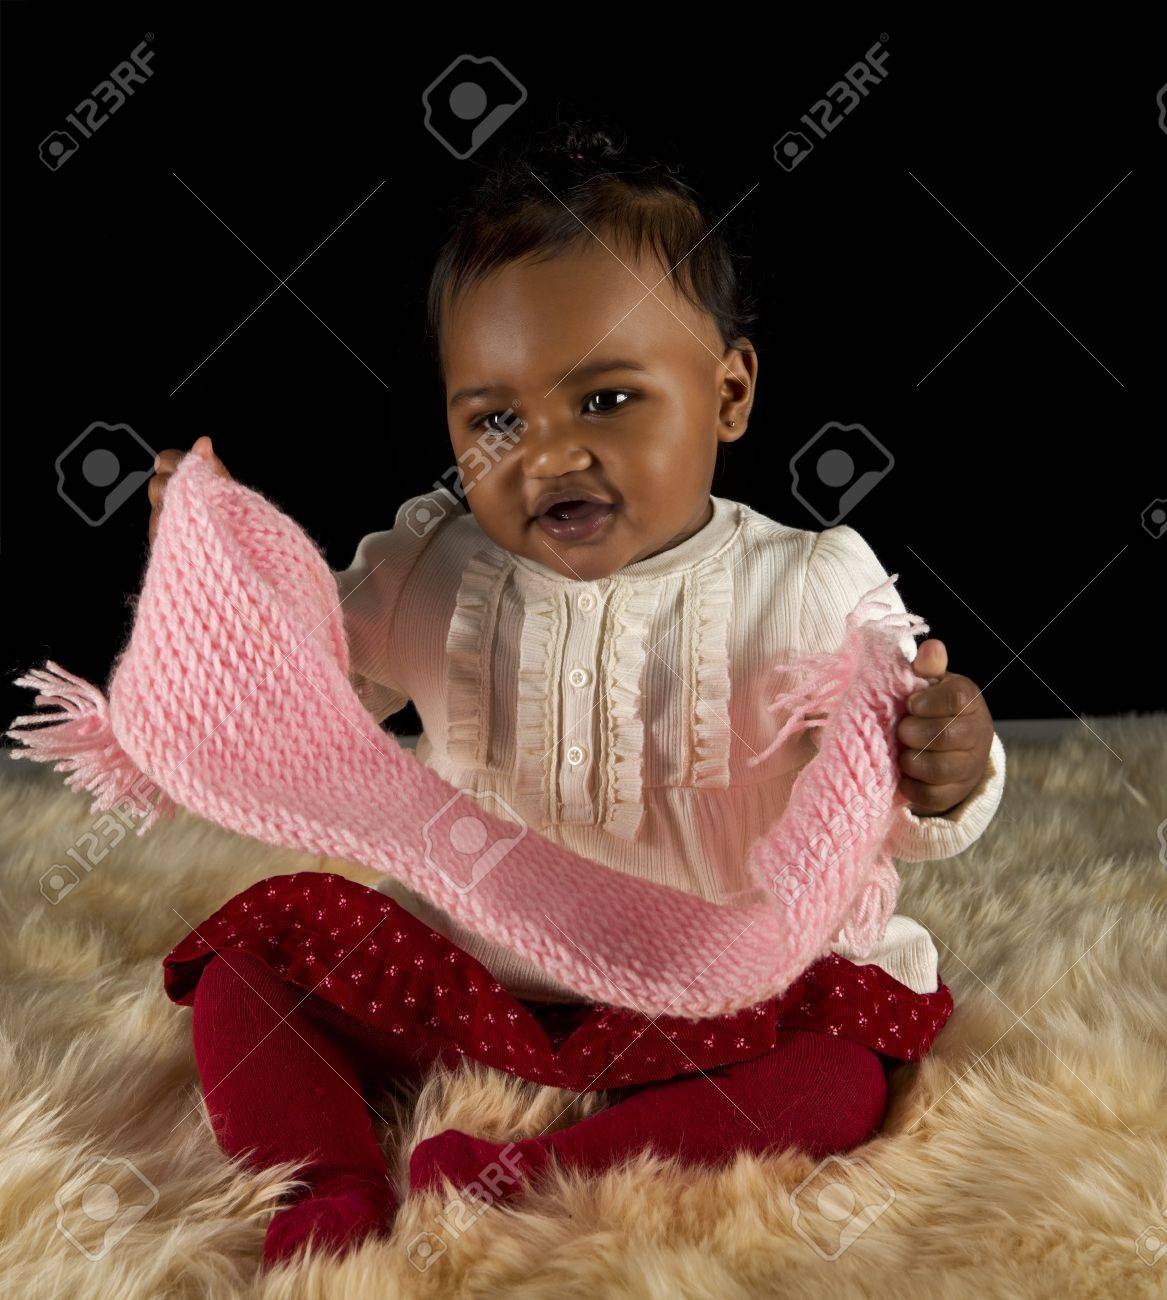 beautiful baby girl playing with a pink scarf stock photo, picture